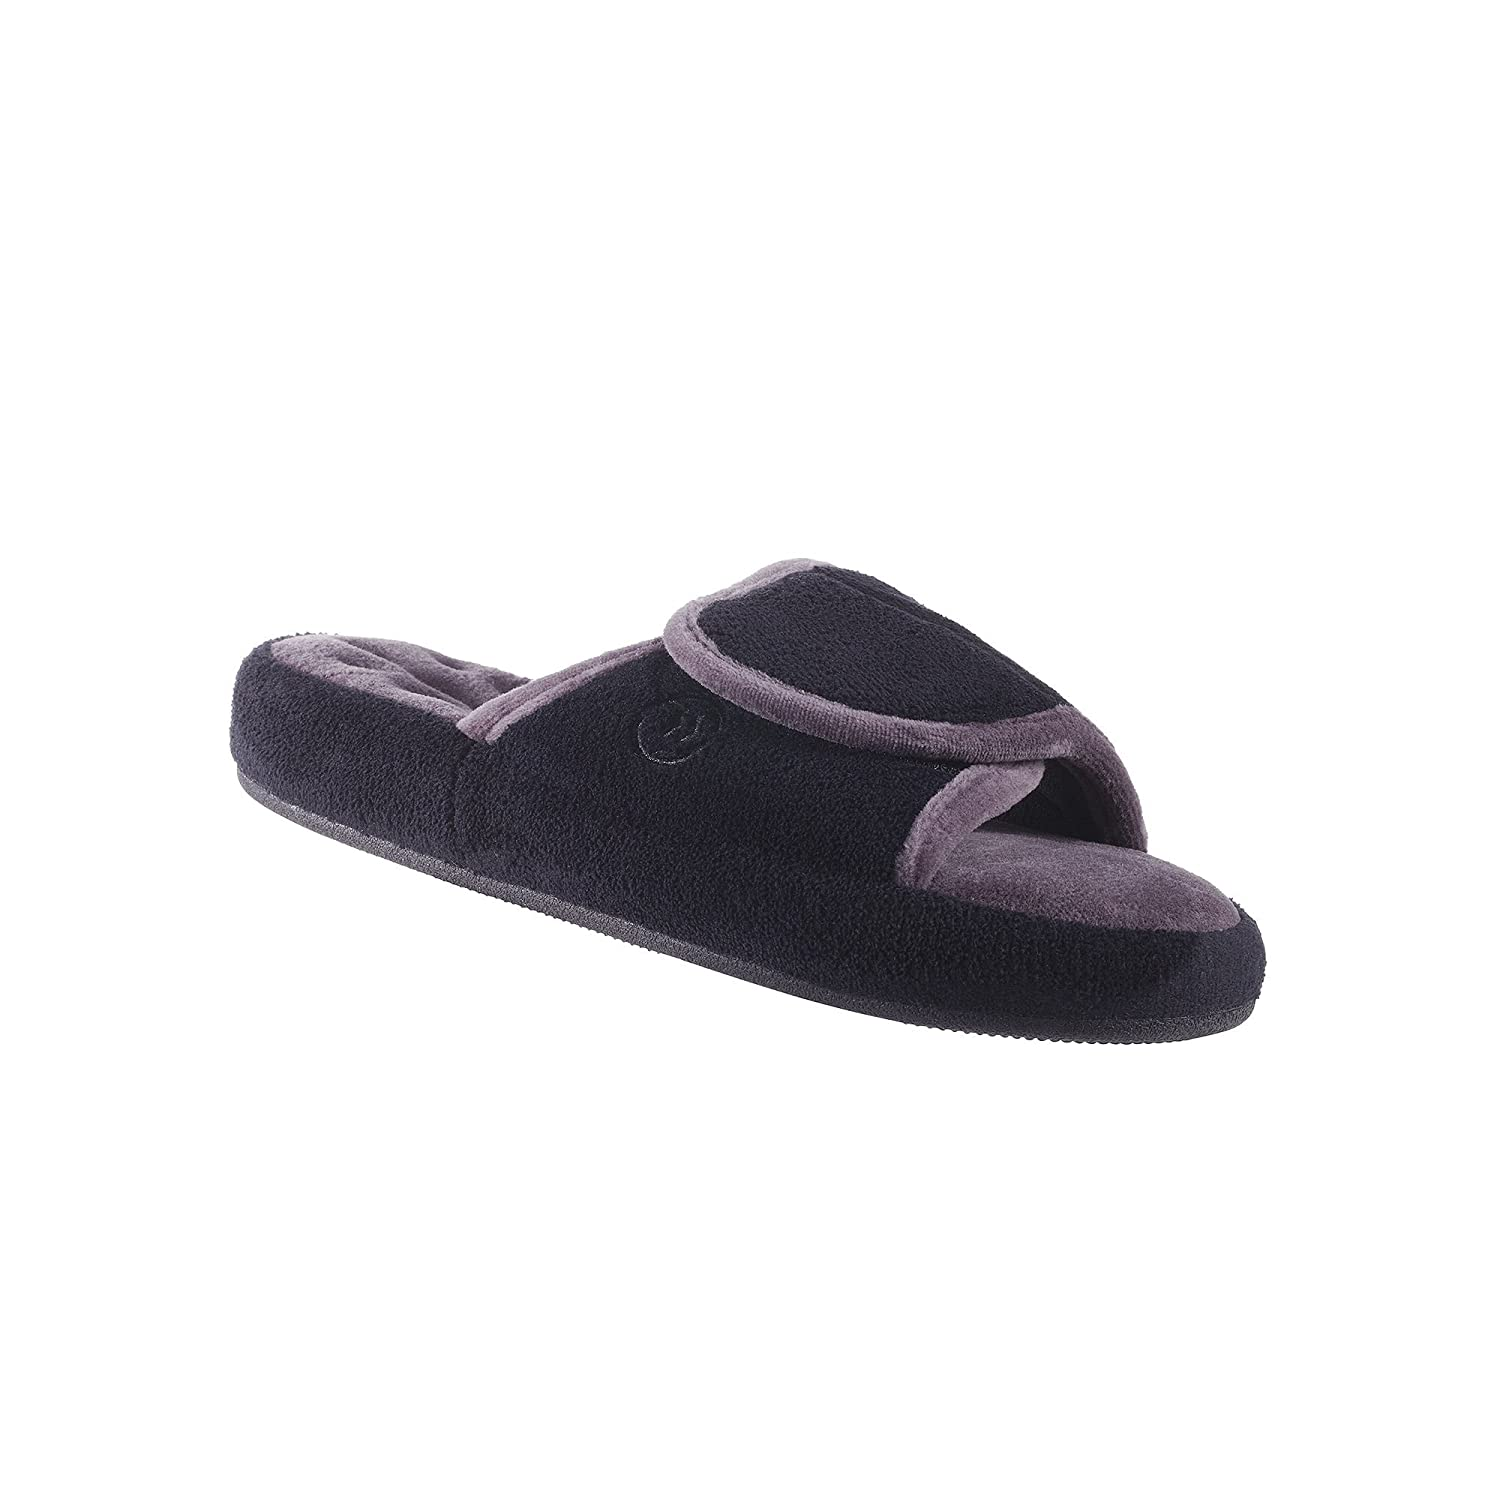 ISOTONER Women's Microterry Spa Slide Slippers Black Grey 8.5 9